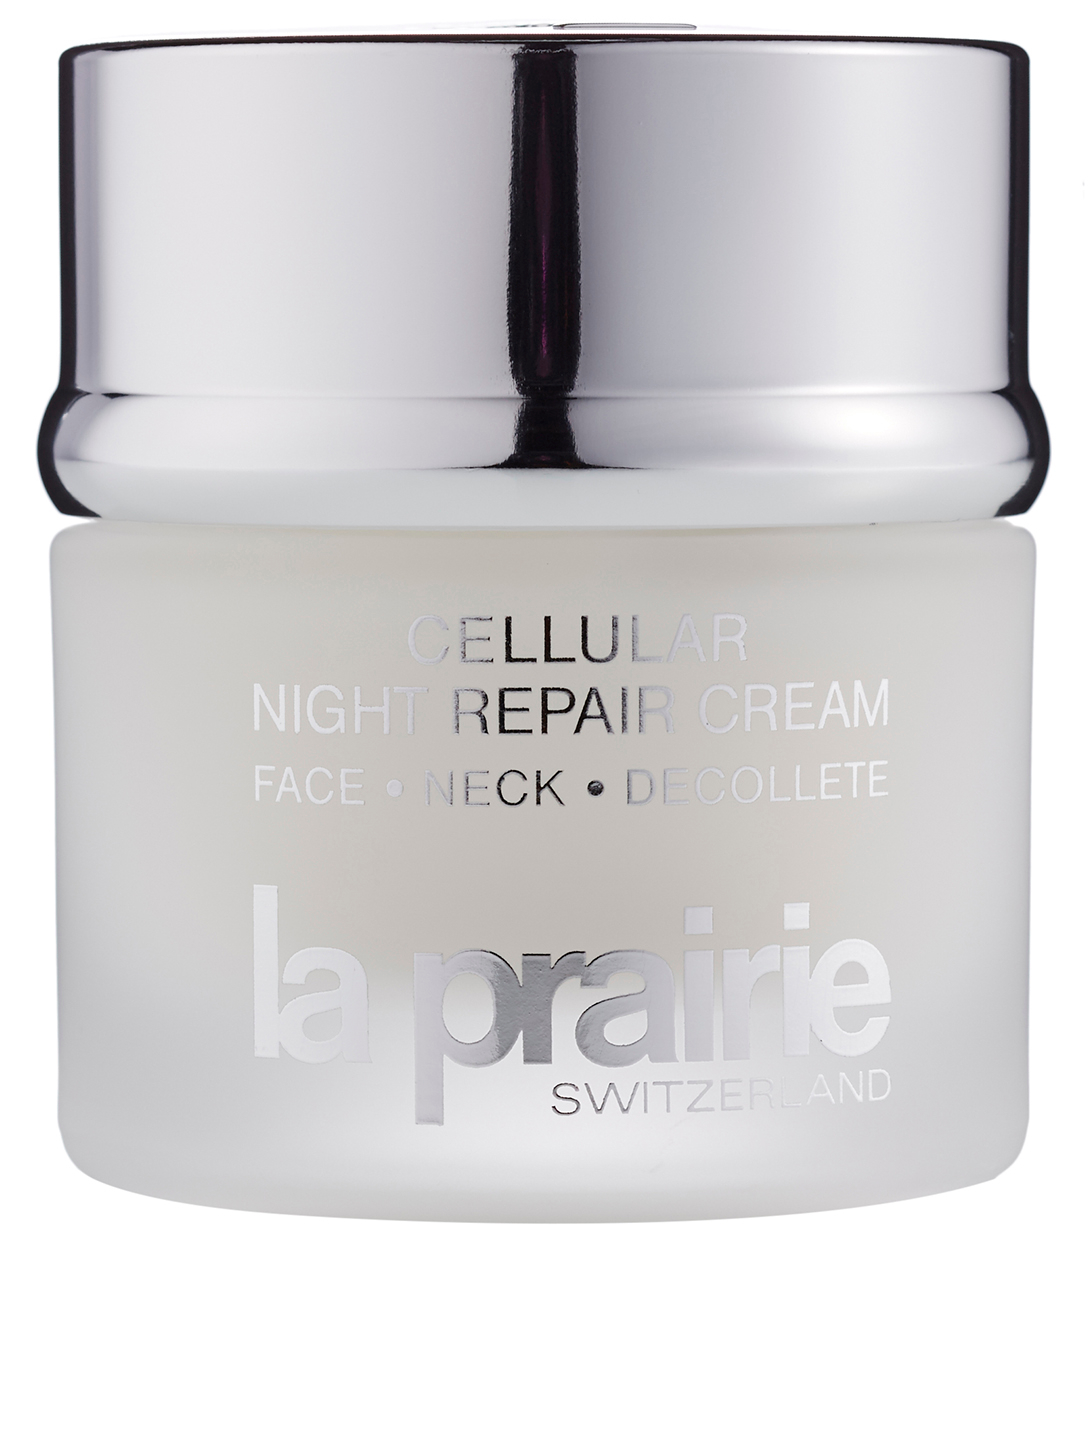 LA PRAIRIE Cellular Night Repair Cream Face-Neck-Decollete Beauty